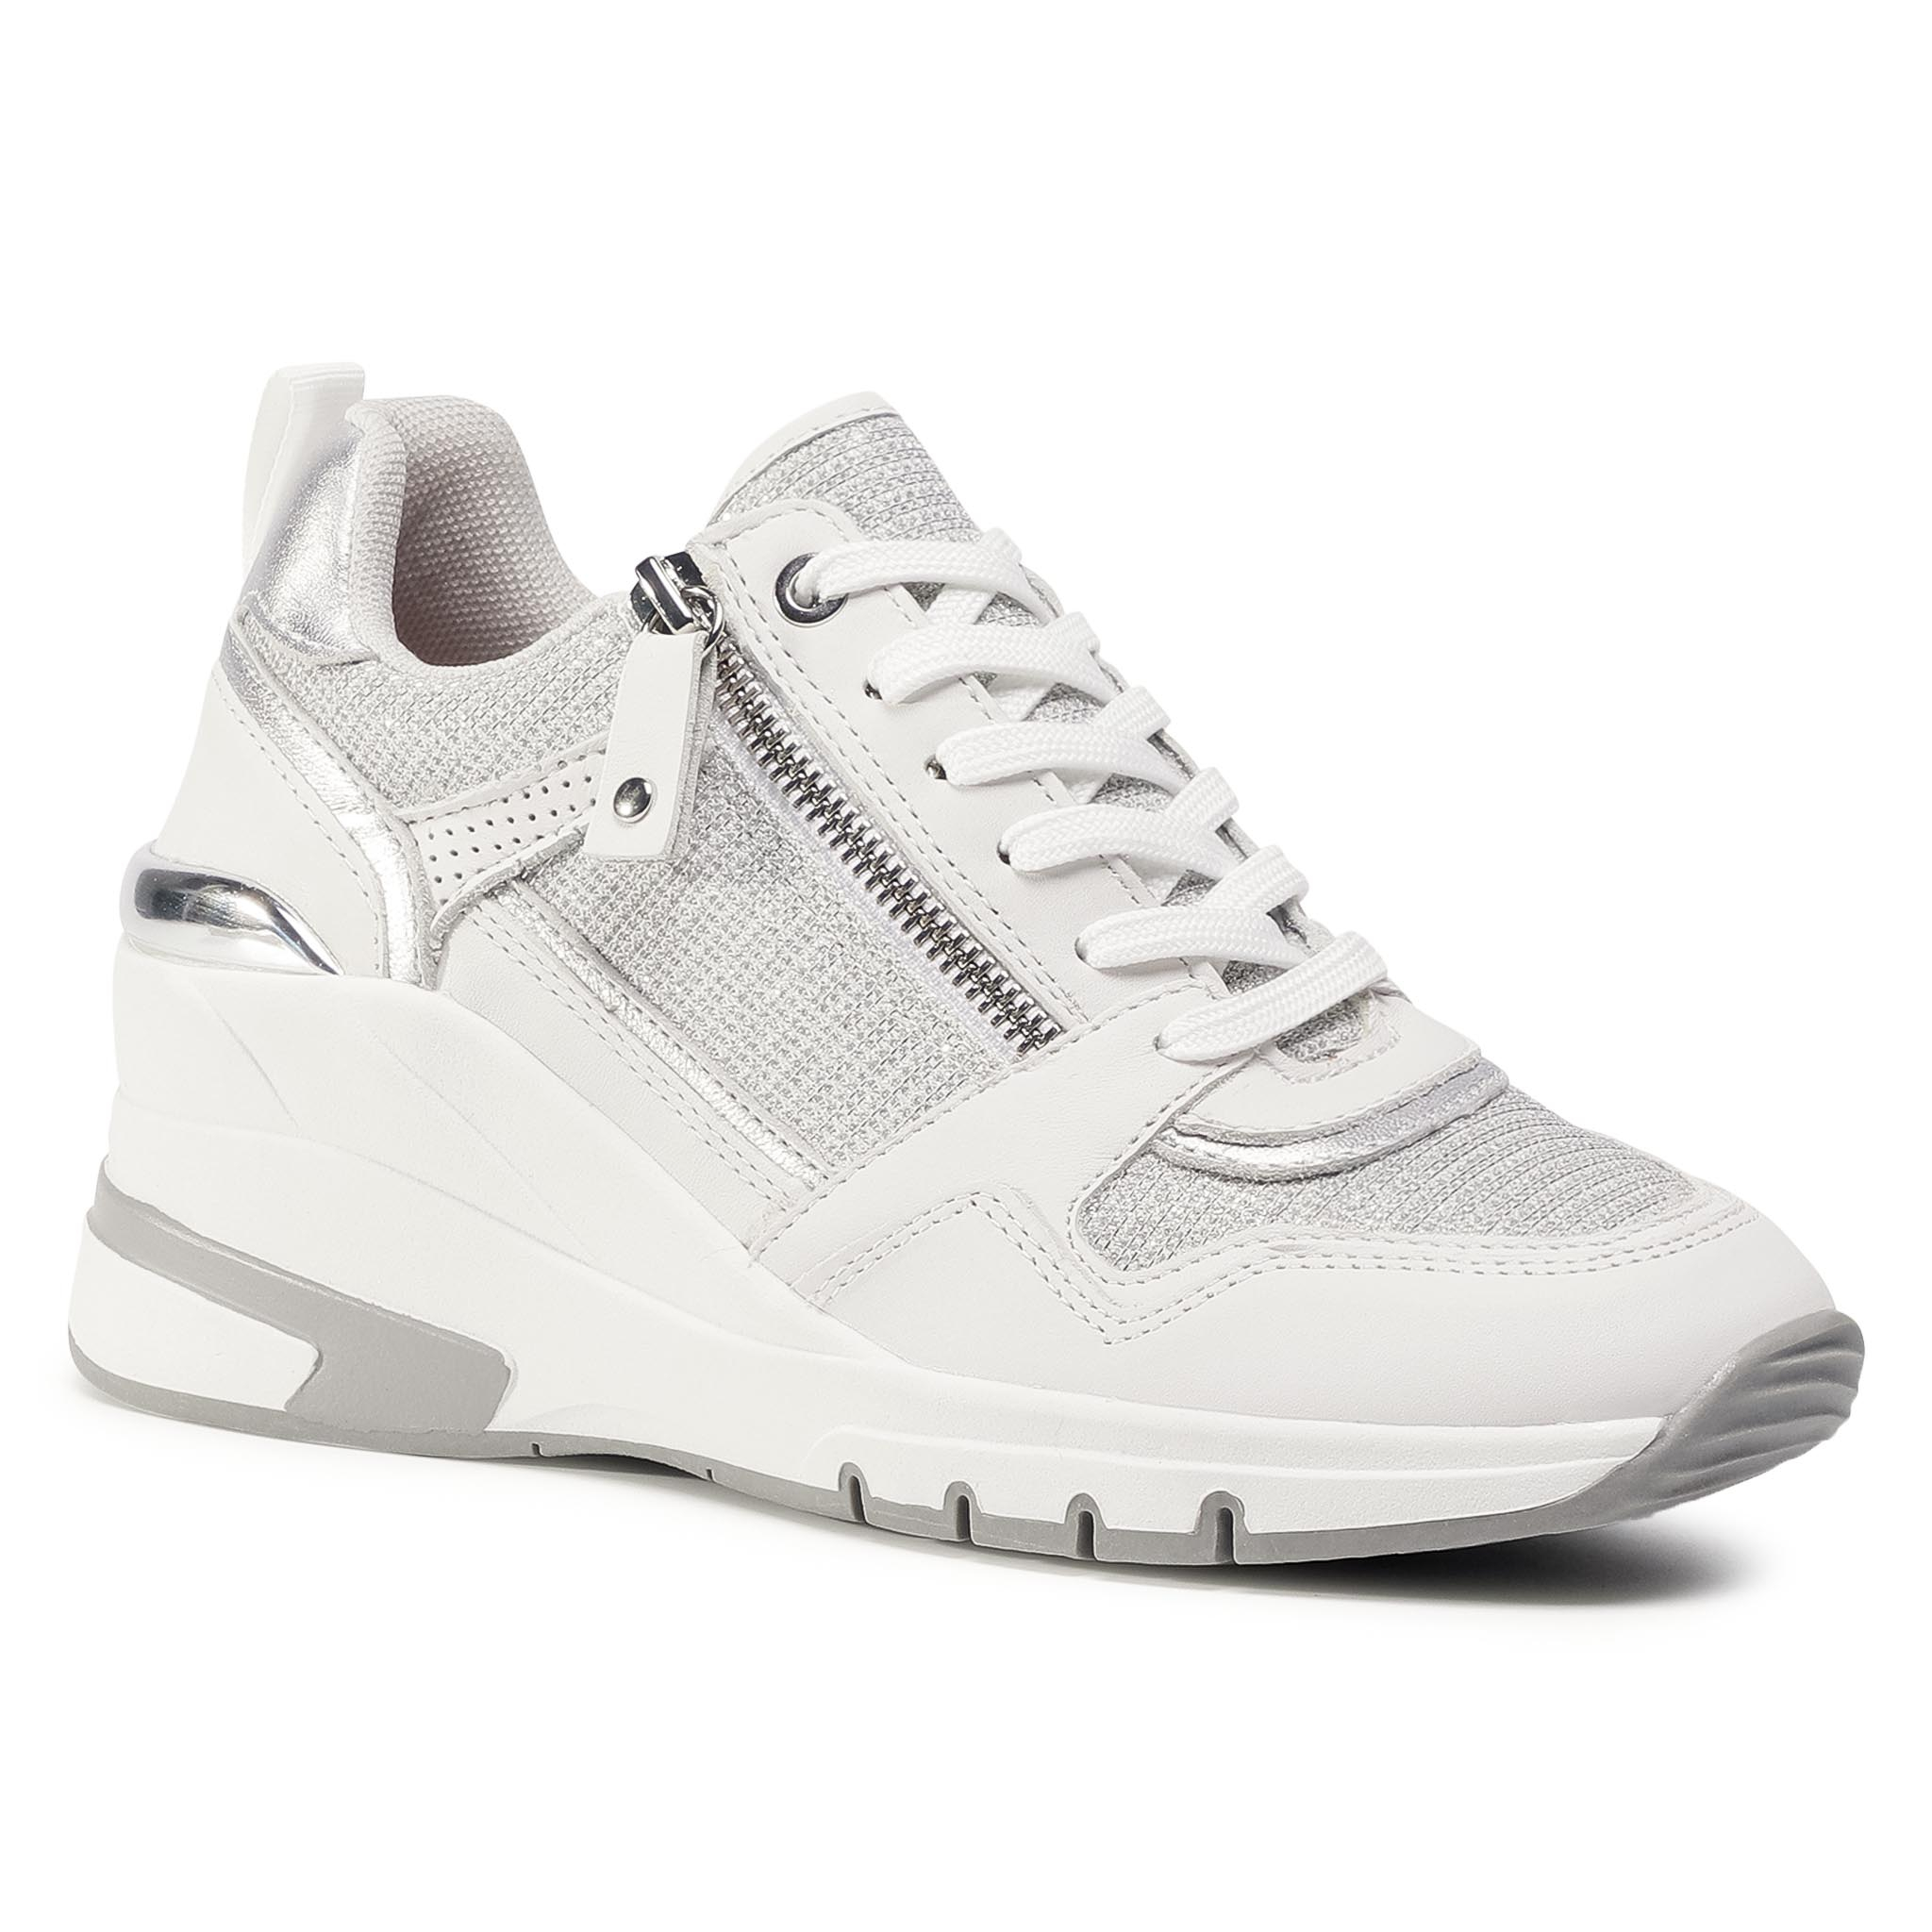 Image of Sneakers CAPRICE - 9-23710-25 White Comb 197